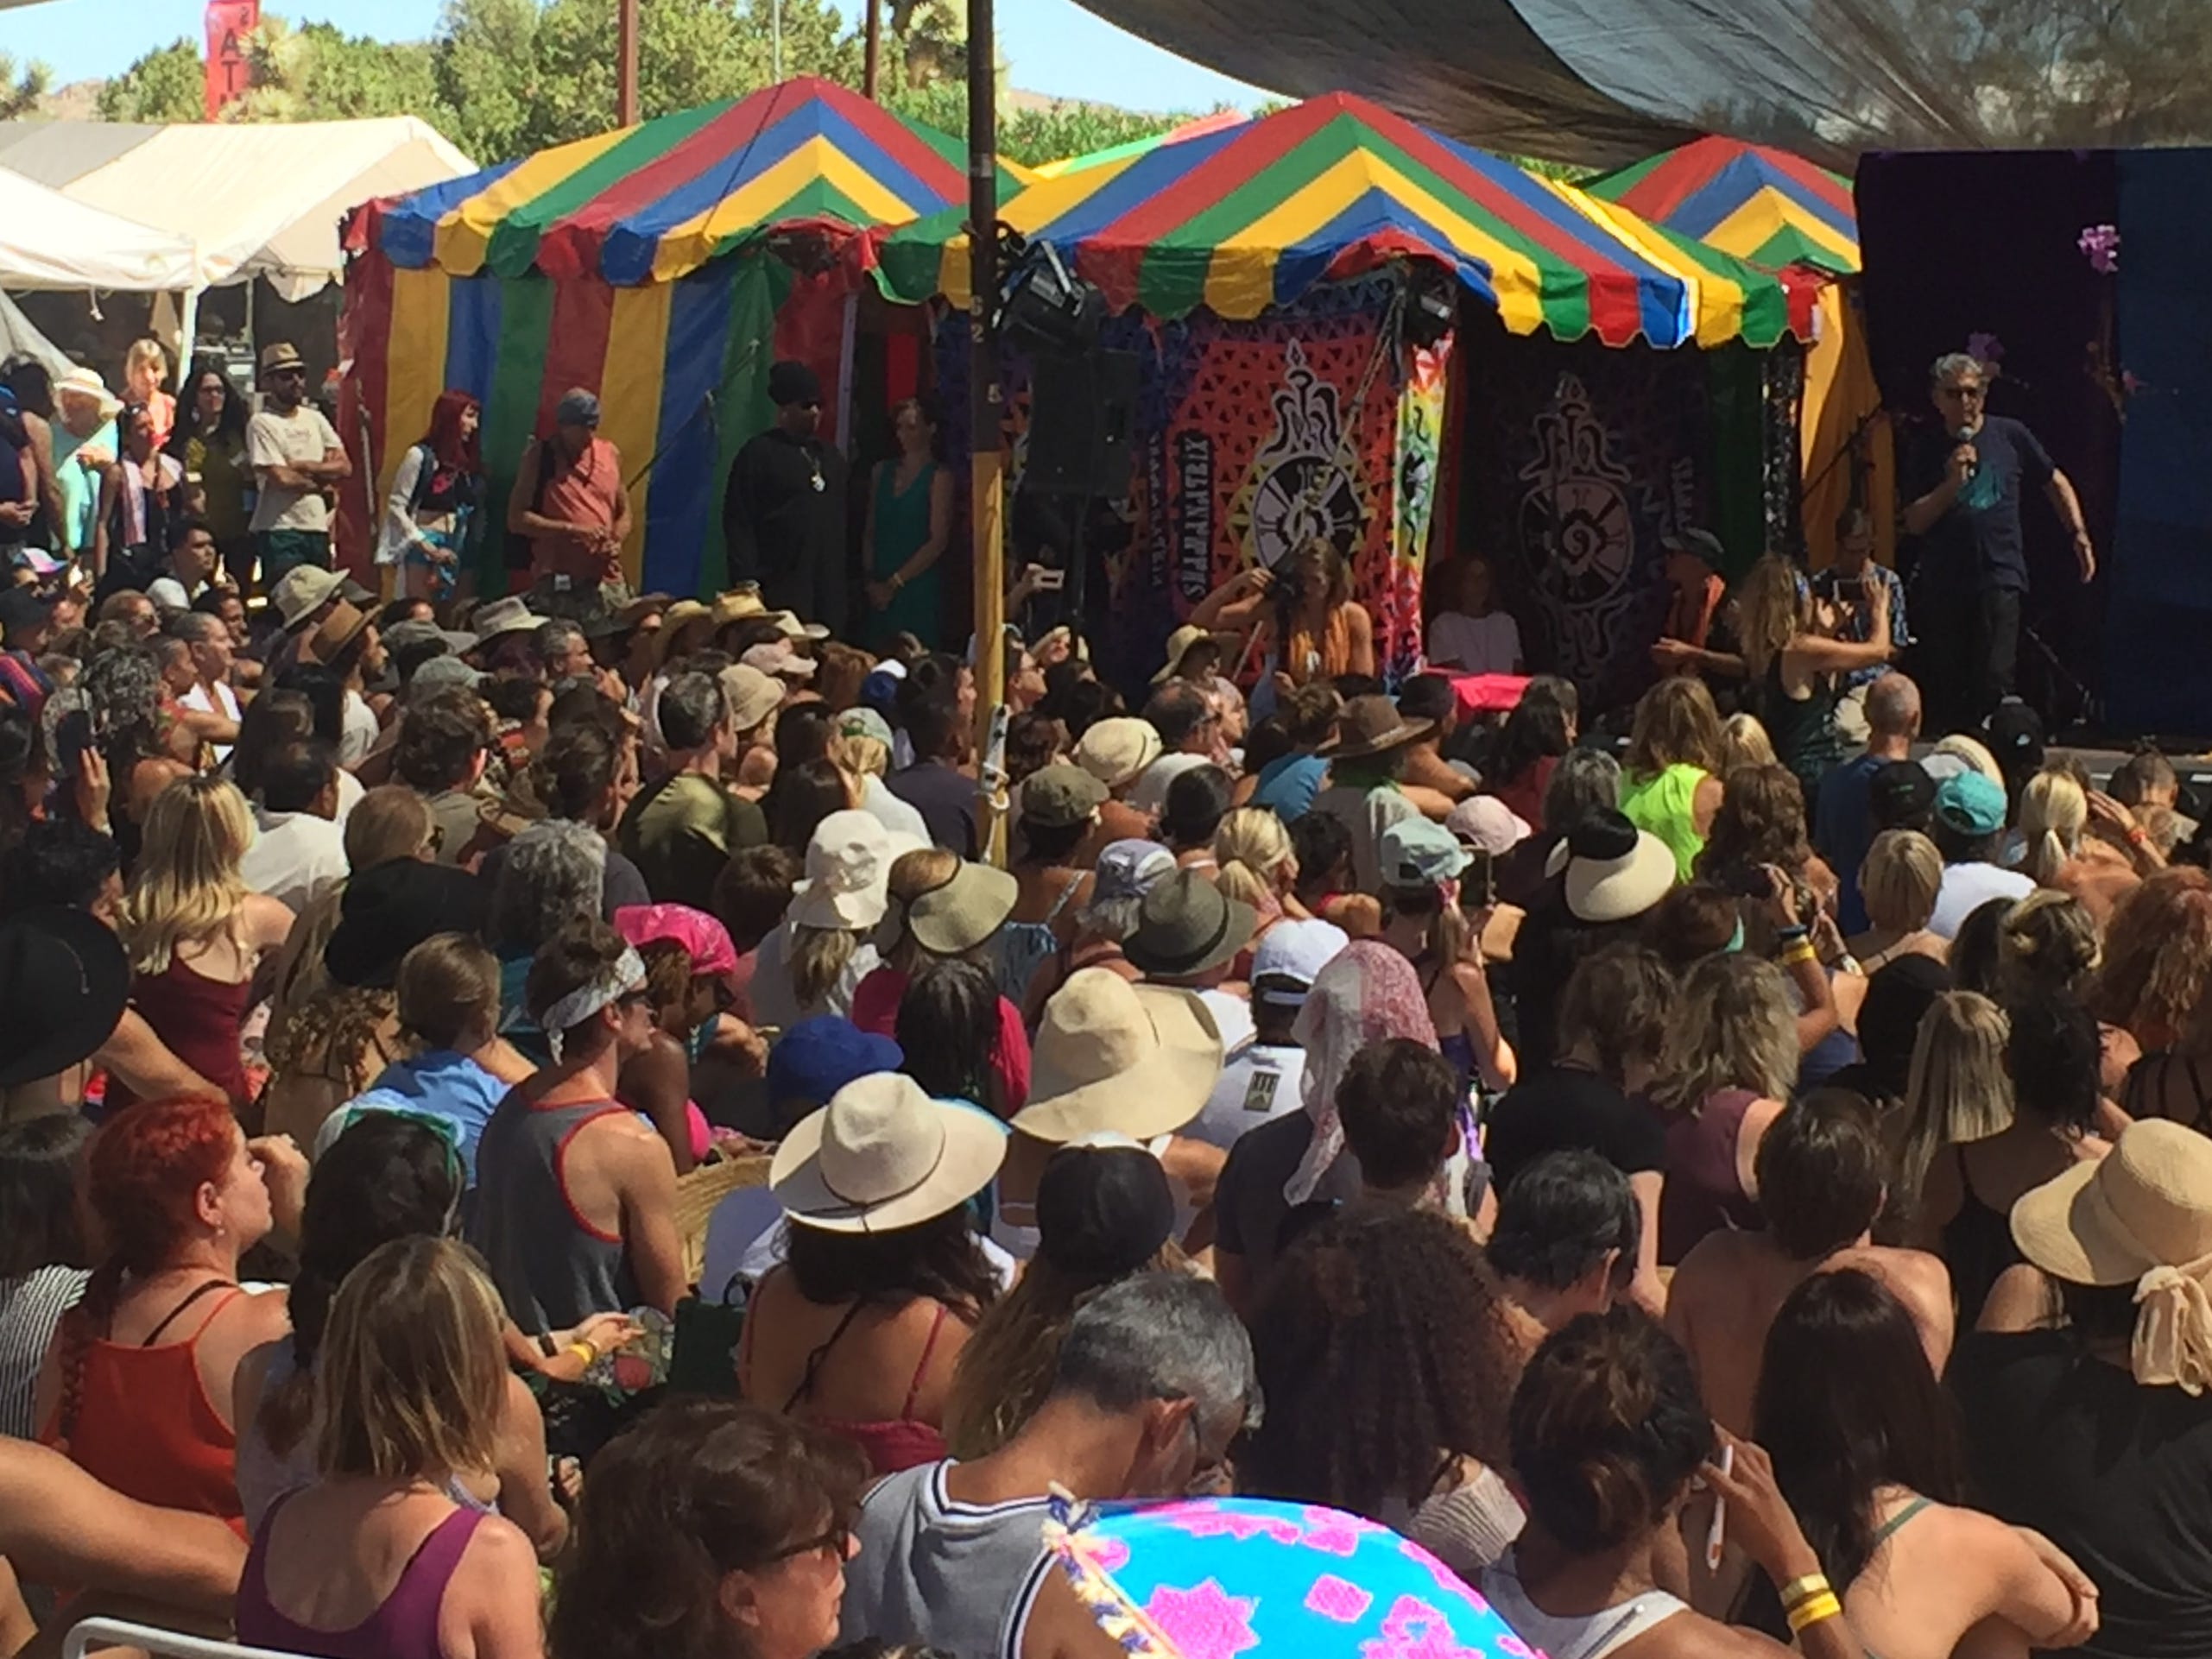 A standing room-only crowd listens Saturday to Deepak Chopra at Bhakti Fest in Joshua Tree. Chopra, an author, medical doctor and alternative medicine advocate is a prominent figure in the New Age movement. He was the event's headline speaker.